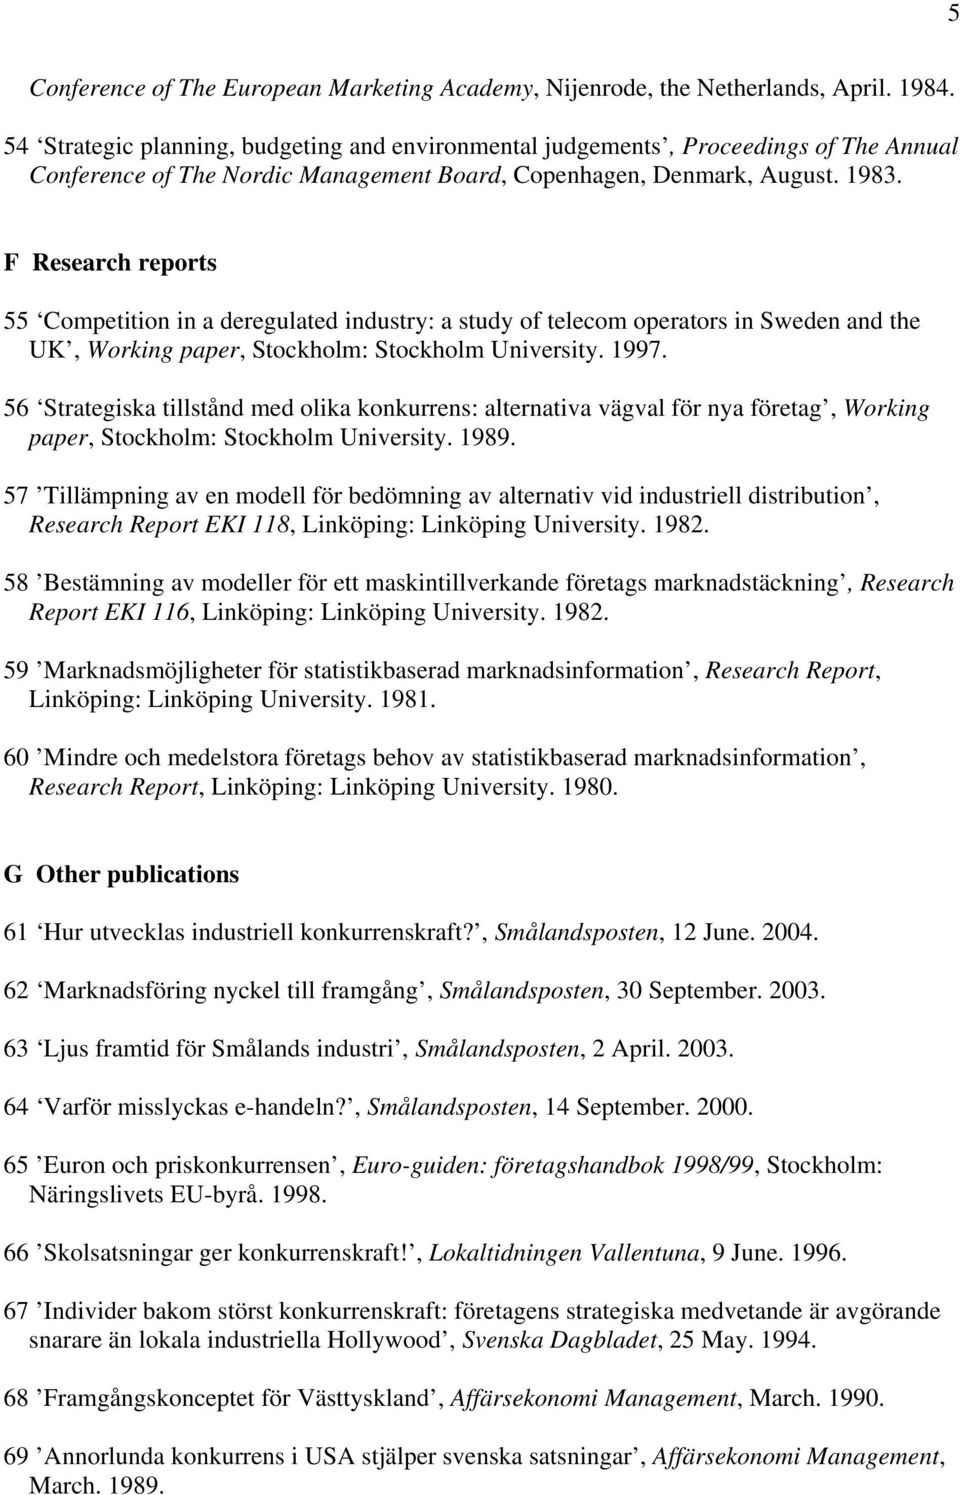 F Research reports 55 Competition in a deregulated industry: a study of telecom operators in Sweden and the UK, Working paper, Stockholm: Stockholm University. 1997.